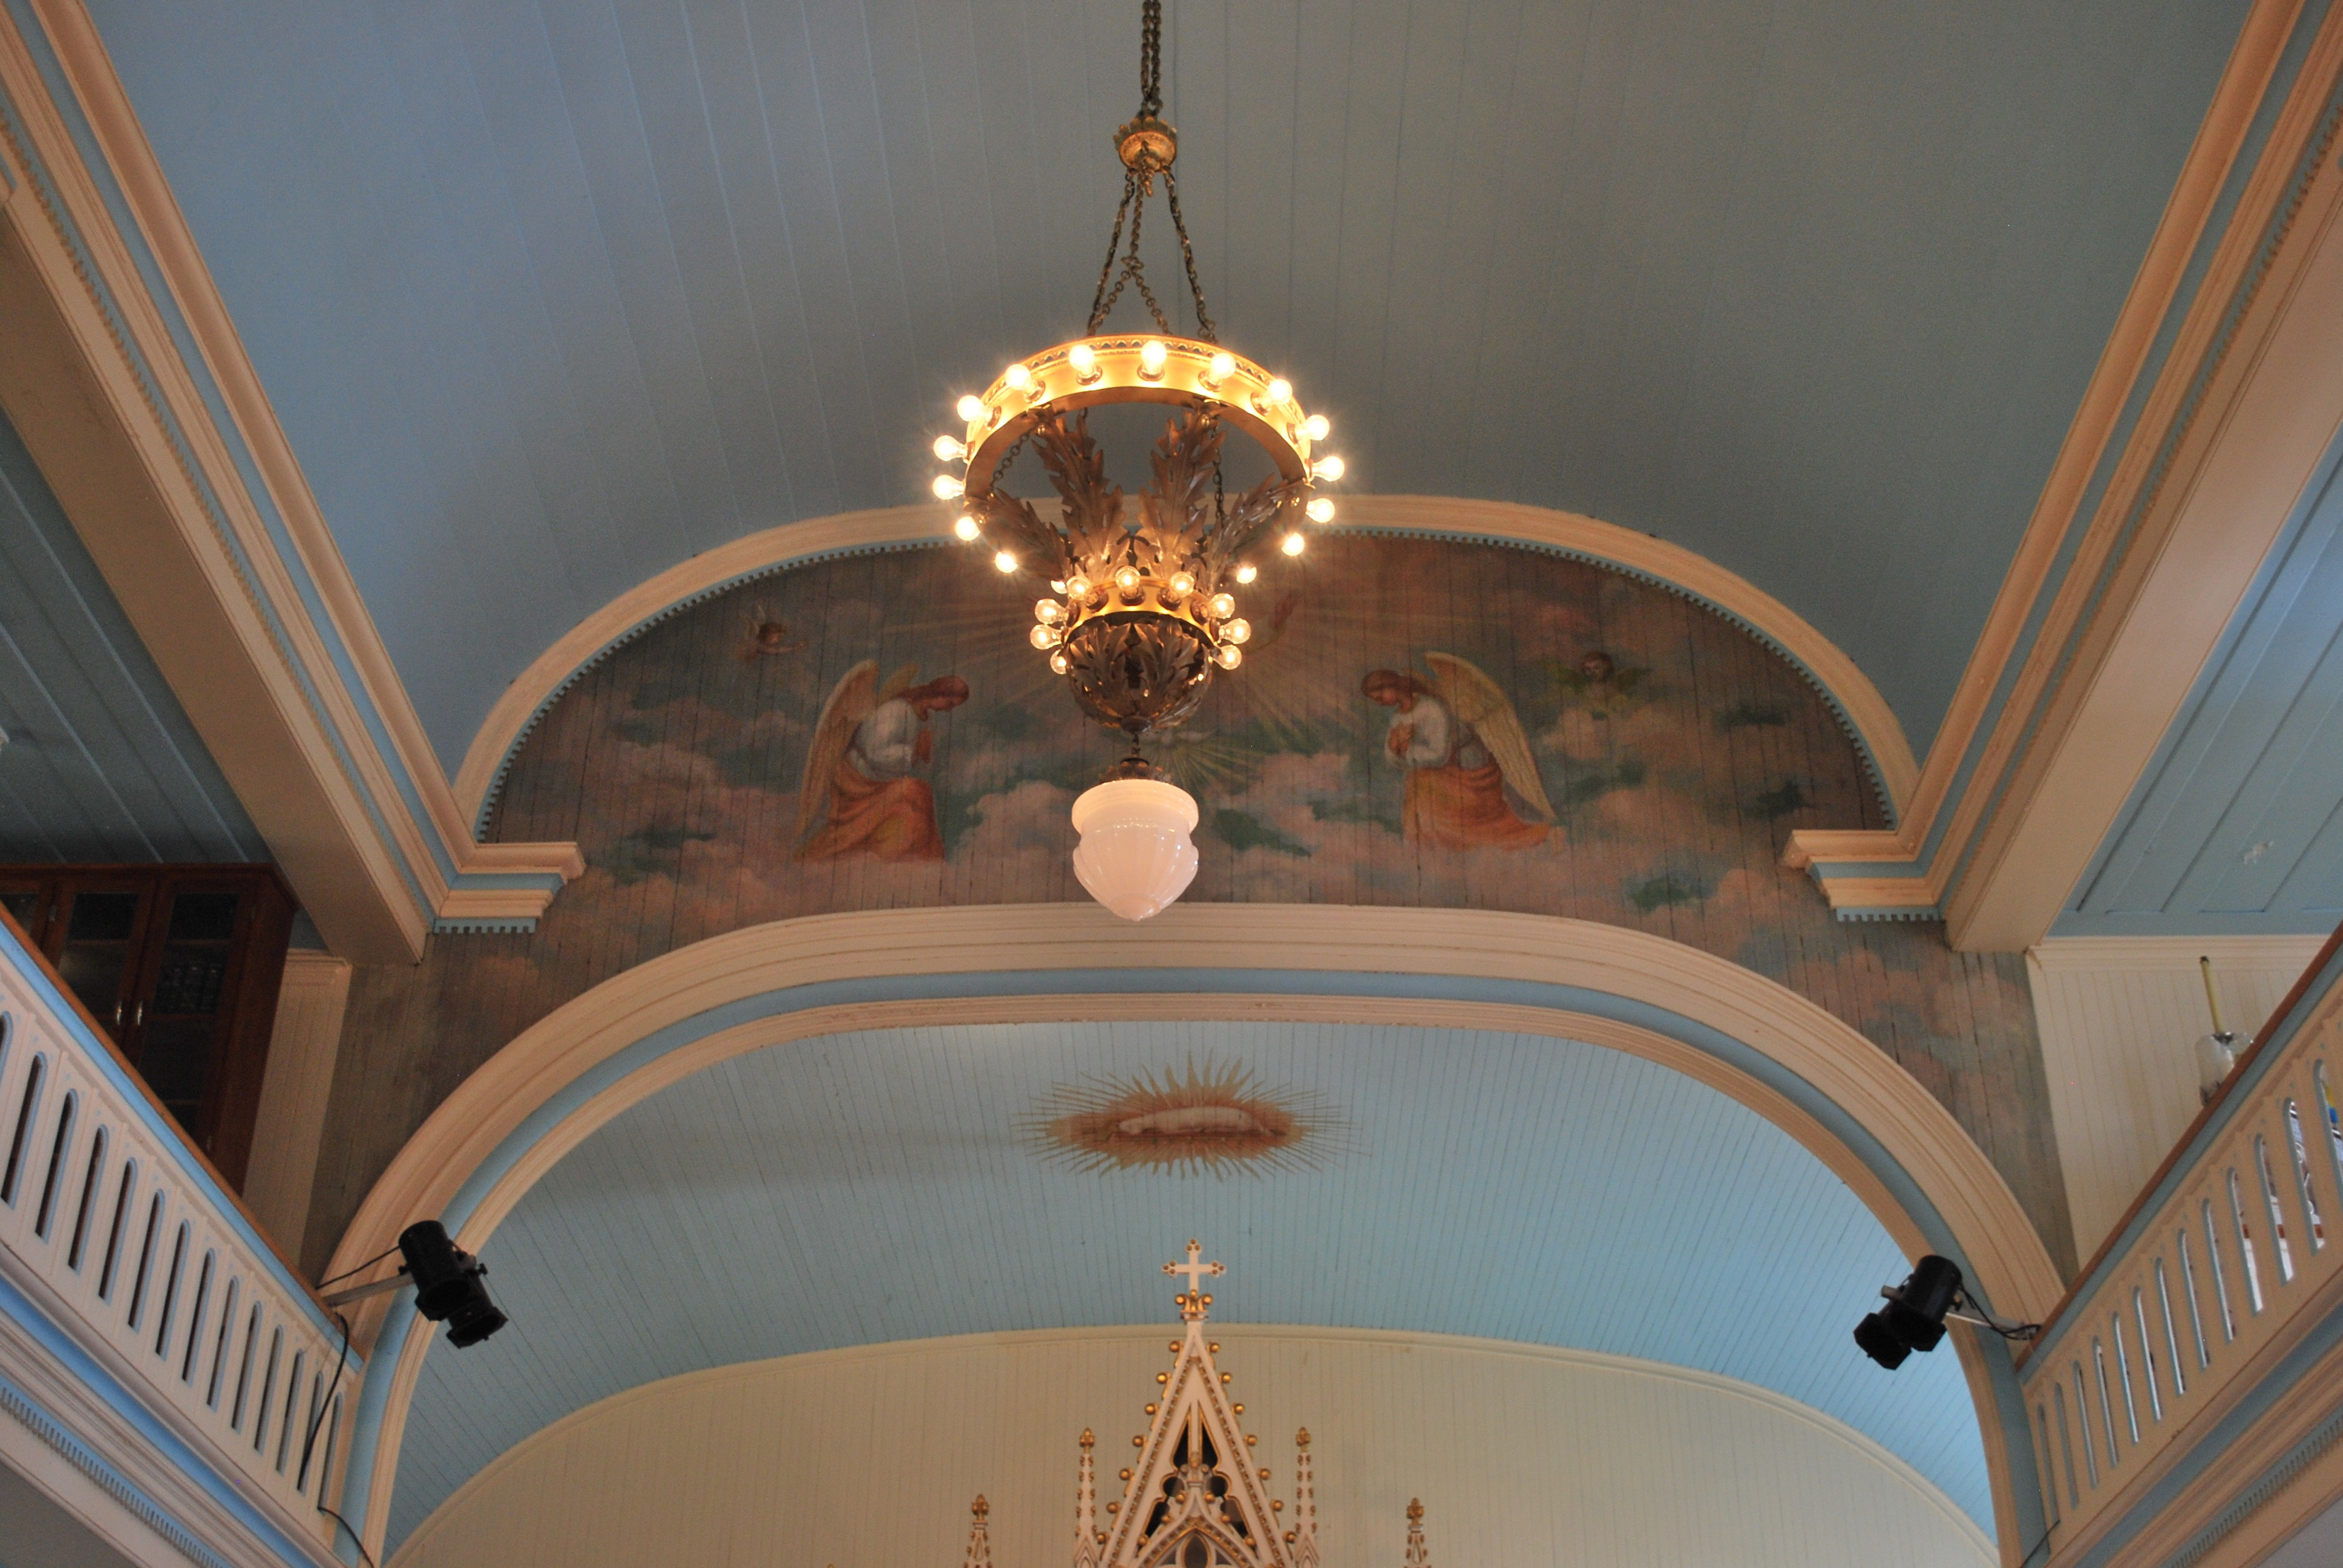 Church's chandeliers